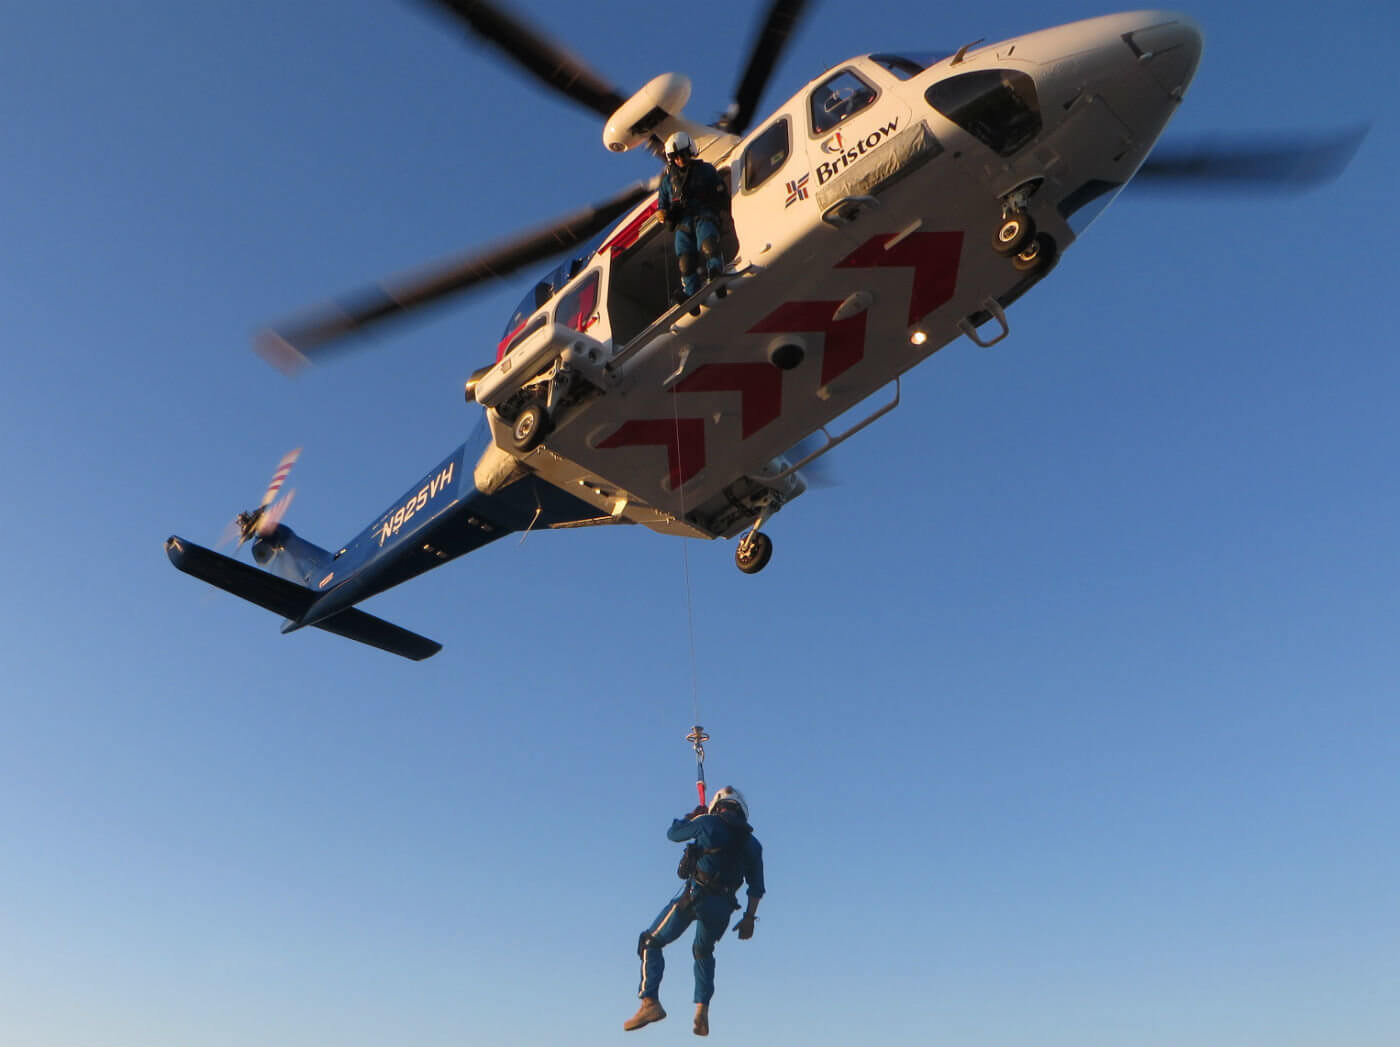 """Bristow has a long history of providing SAR capabilities around the world, with more than 65,000 SAR hours flown,"" said Bristow Americas regional director Samantha Willenbacher."